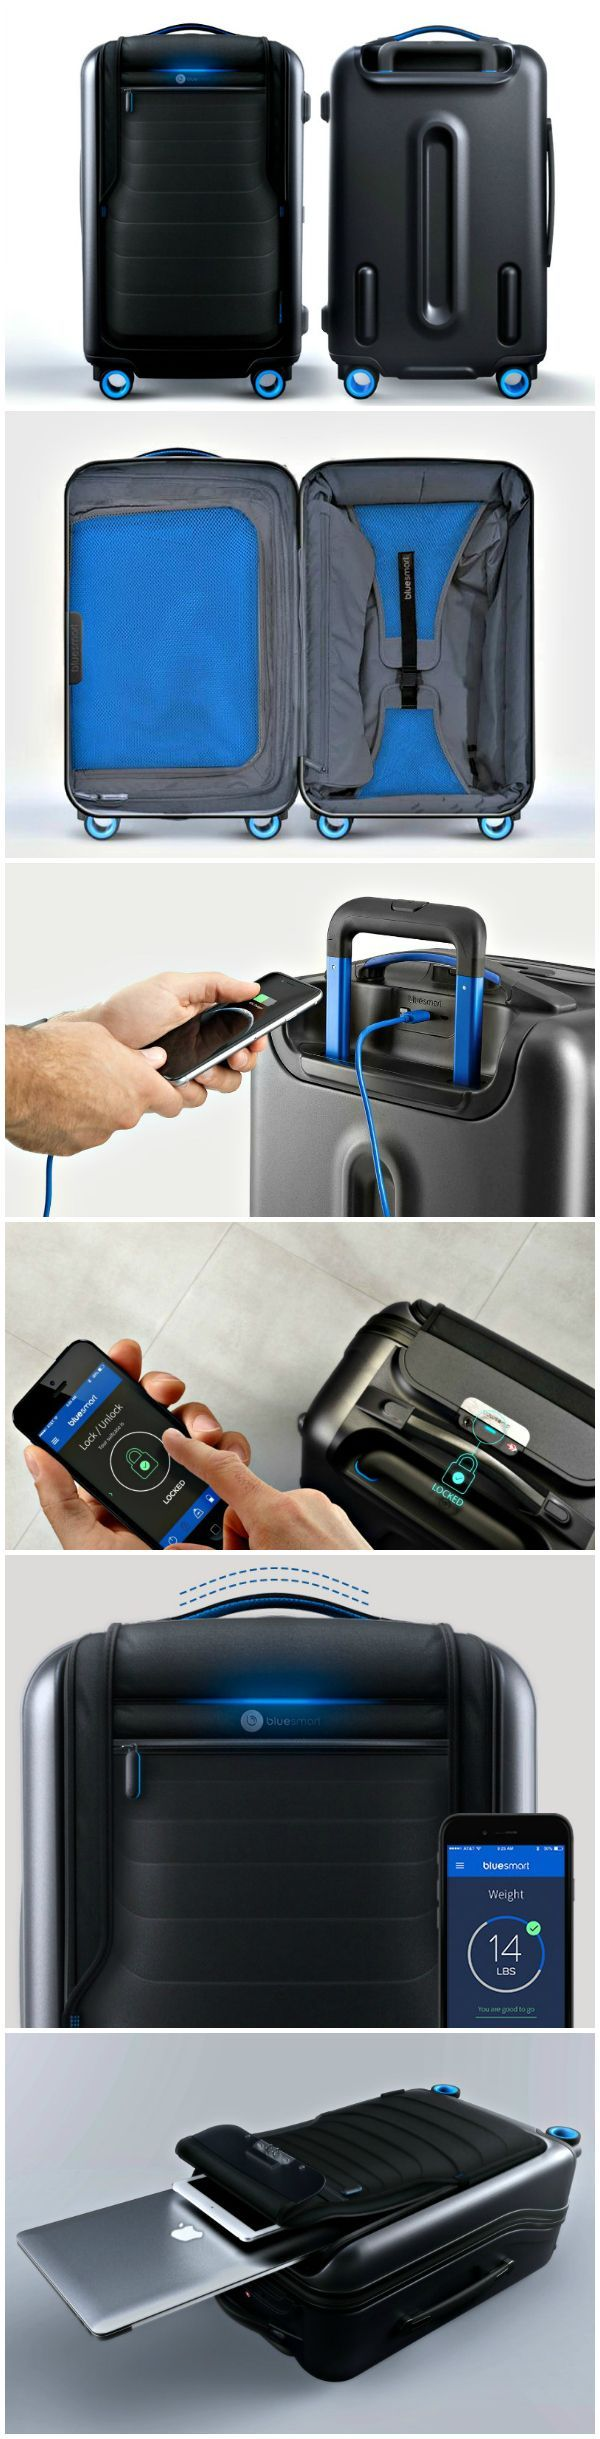 Bluesmart world s first smart connected carry on